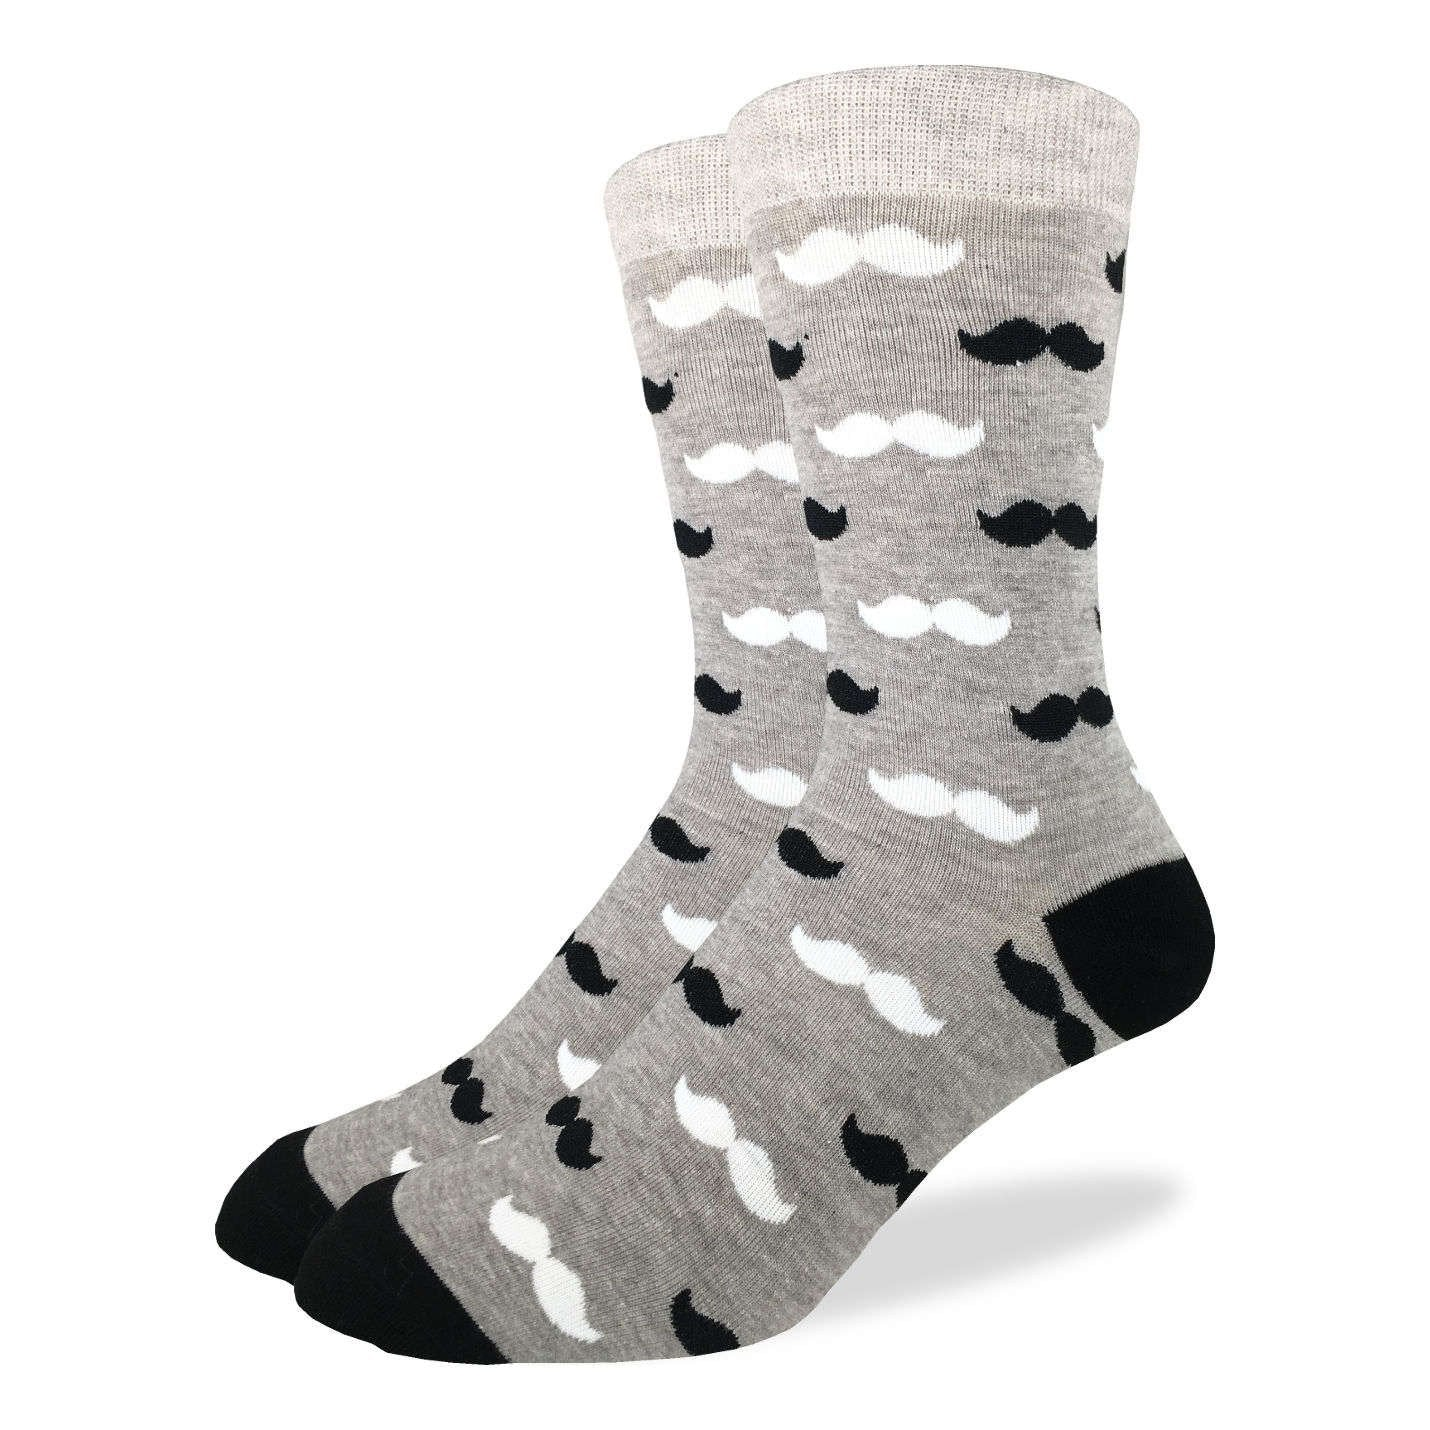 Men's Black & Grey Moustache Socks - Good Luck Sock